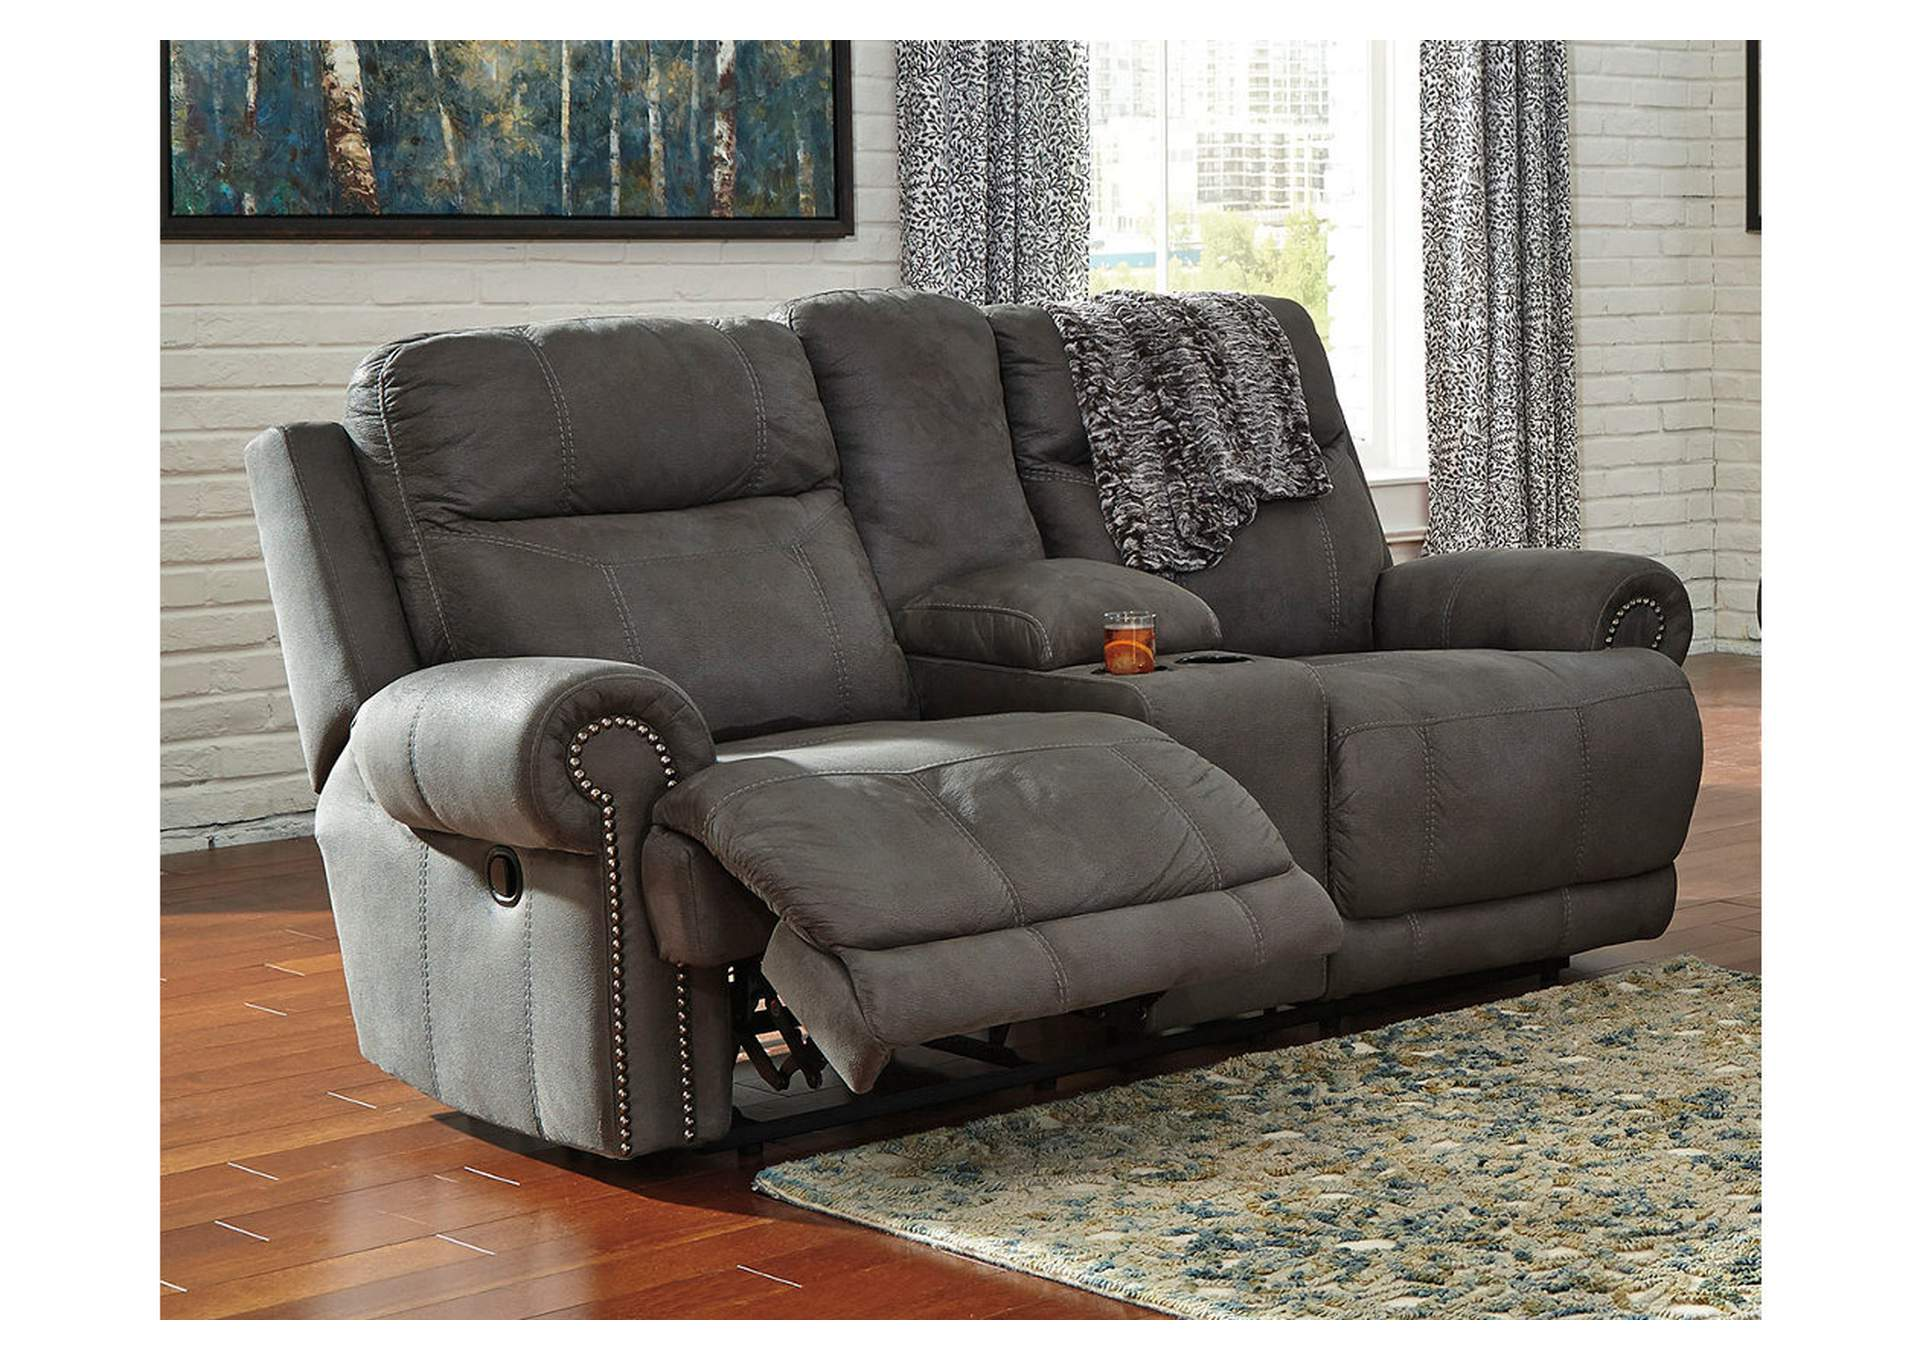 Austere Gray Double Reclining Loveseat w/ Console,Signature Design By Ashley